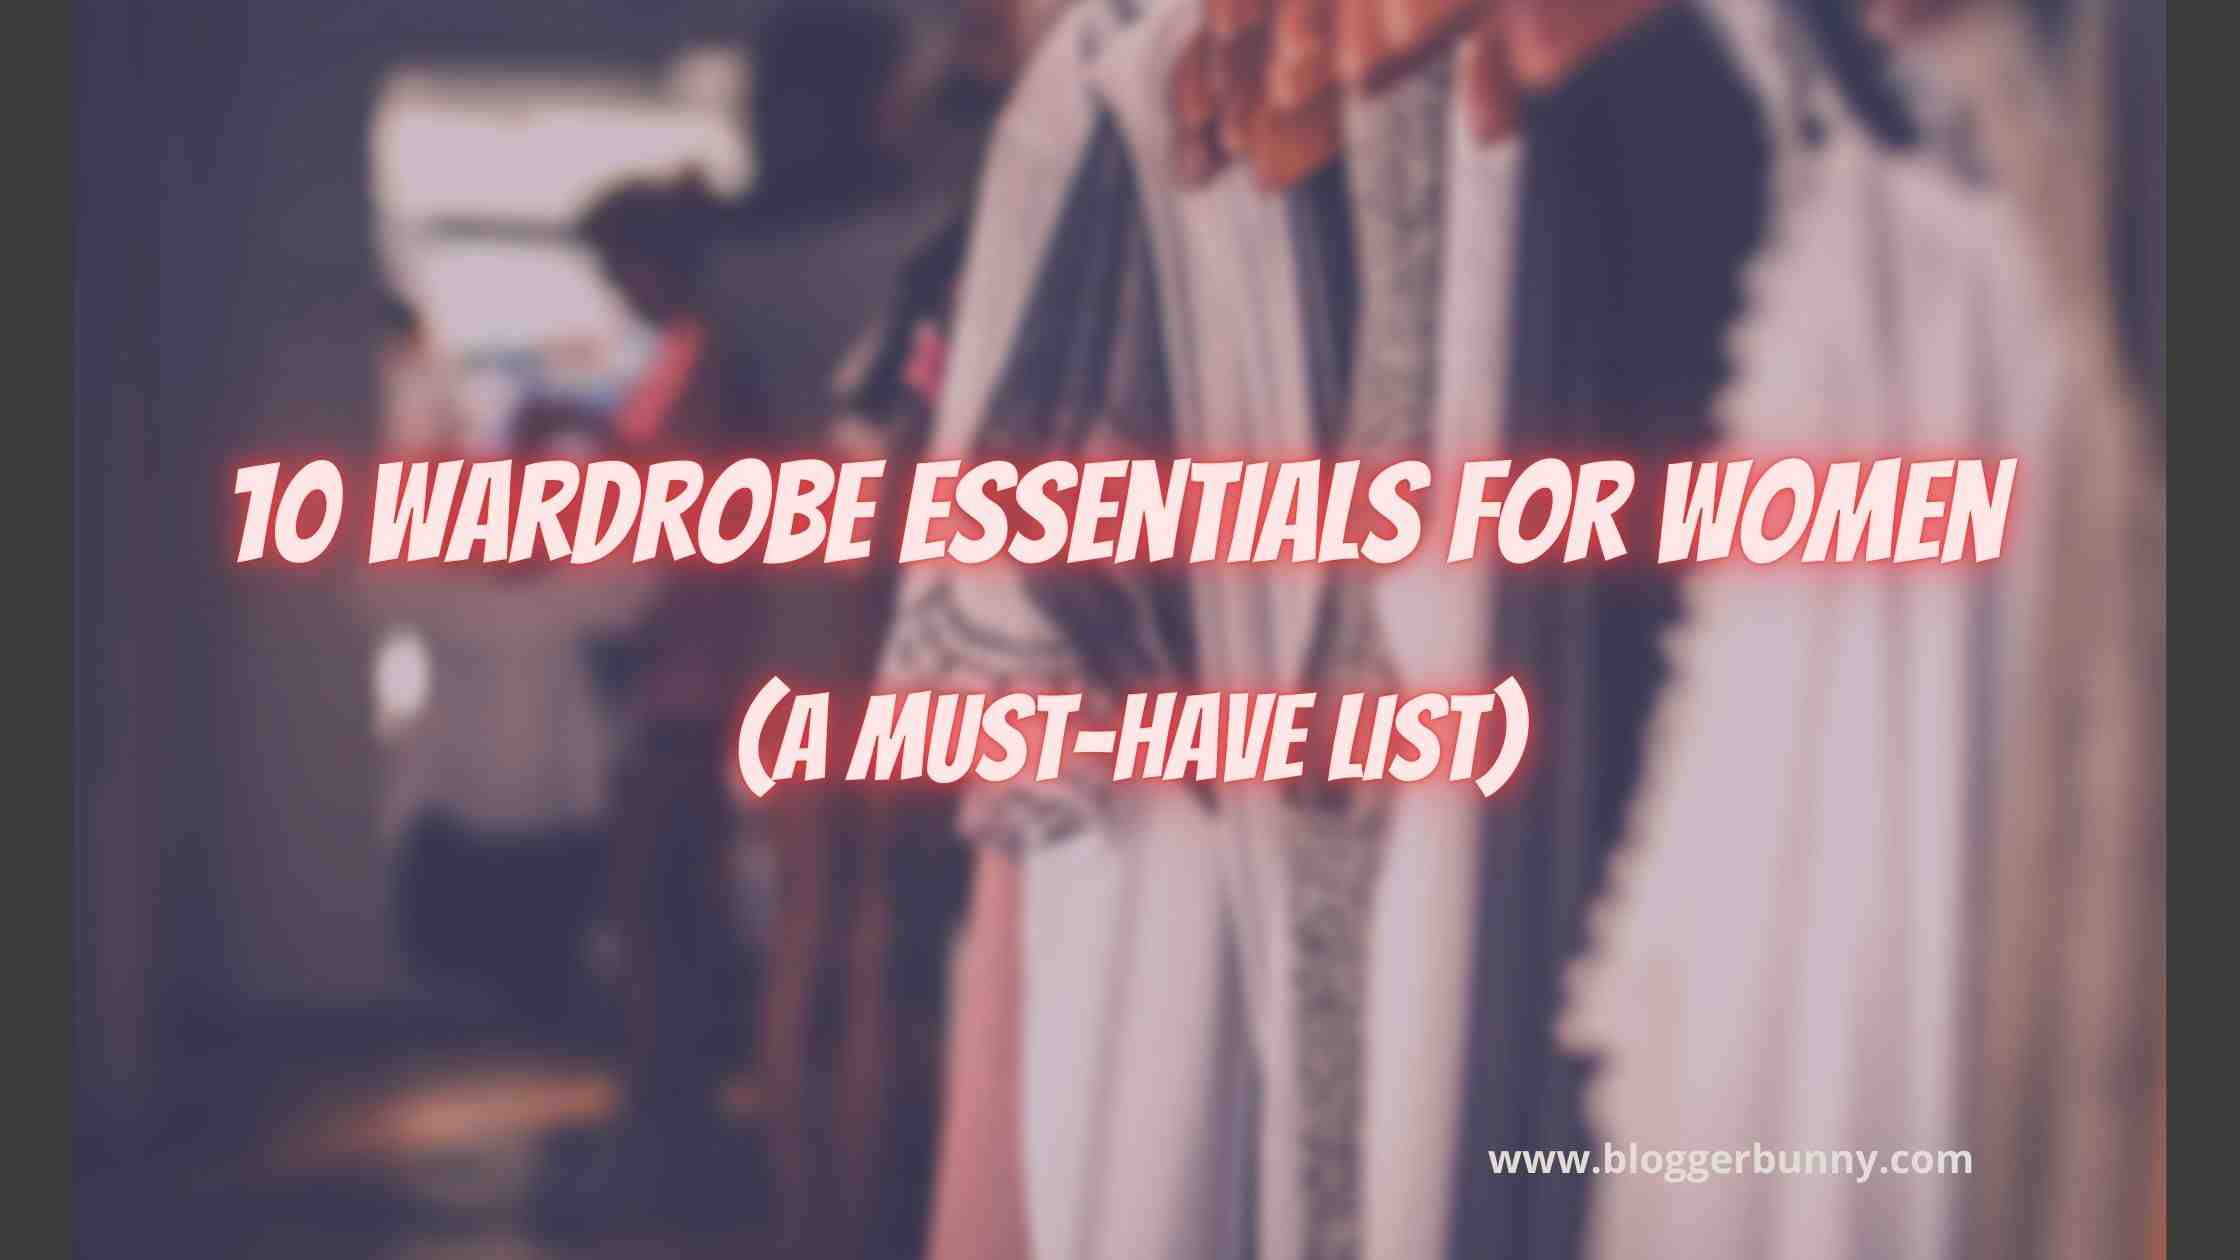 10 Wardrobe Essentials for Women (A Must-Have List)